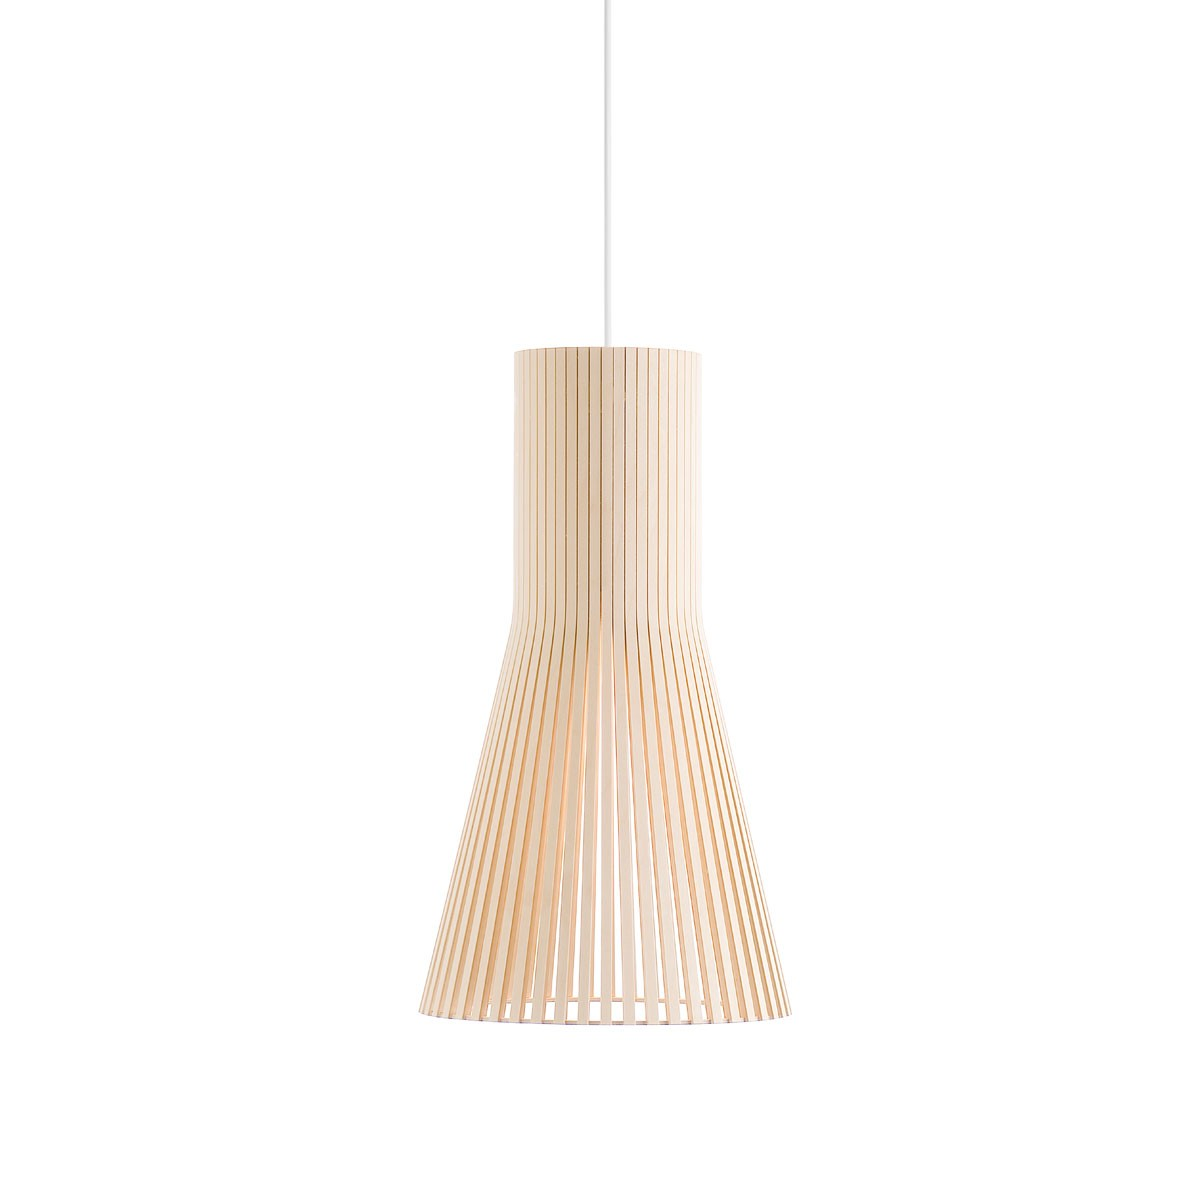 Suspensions Scandinaves Suspensions Lampes Design Scandinave Louis Poulsen Www